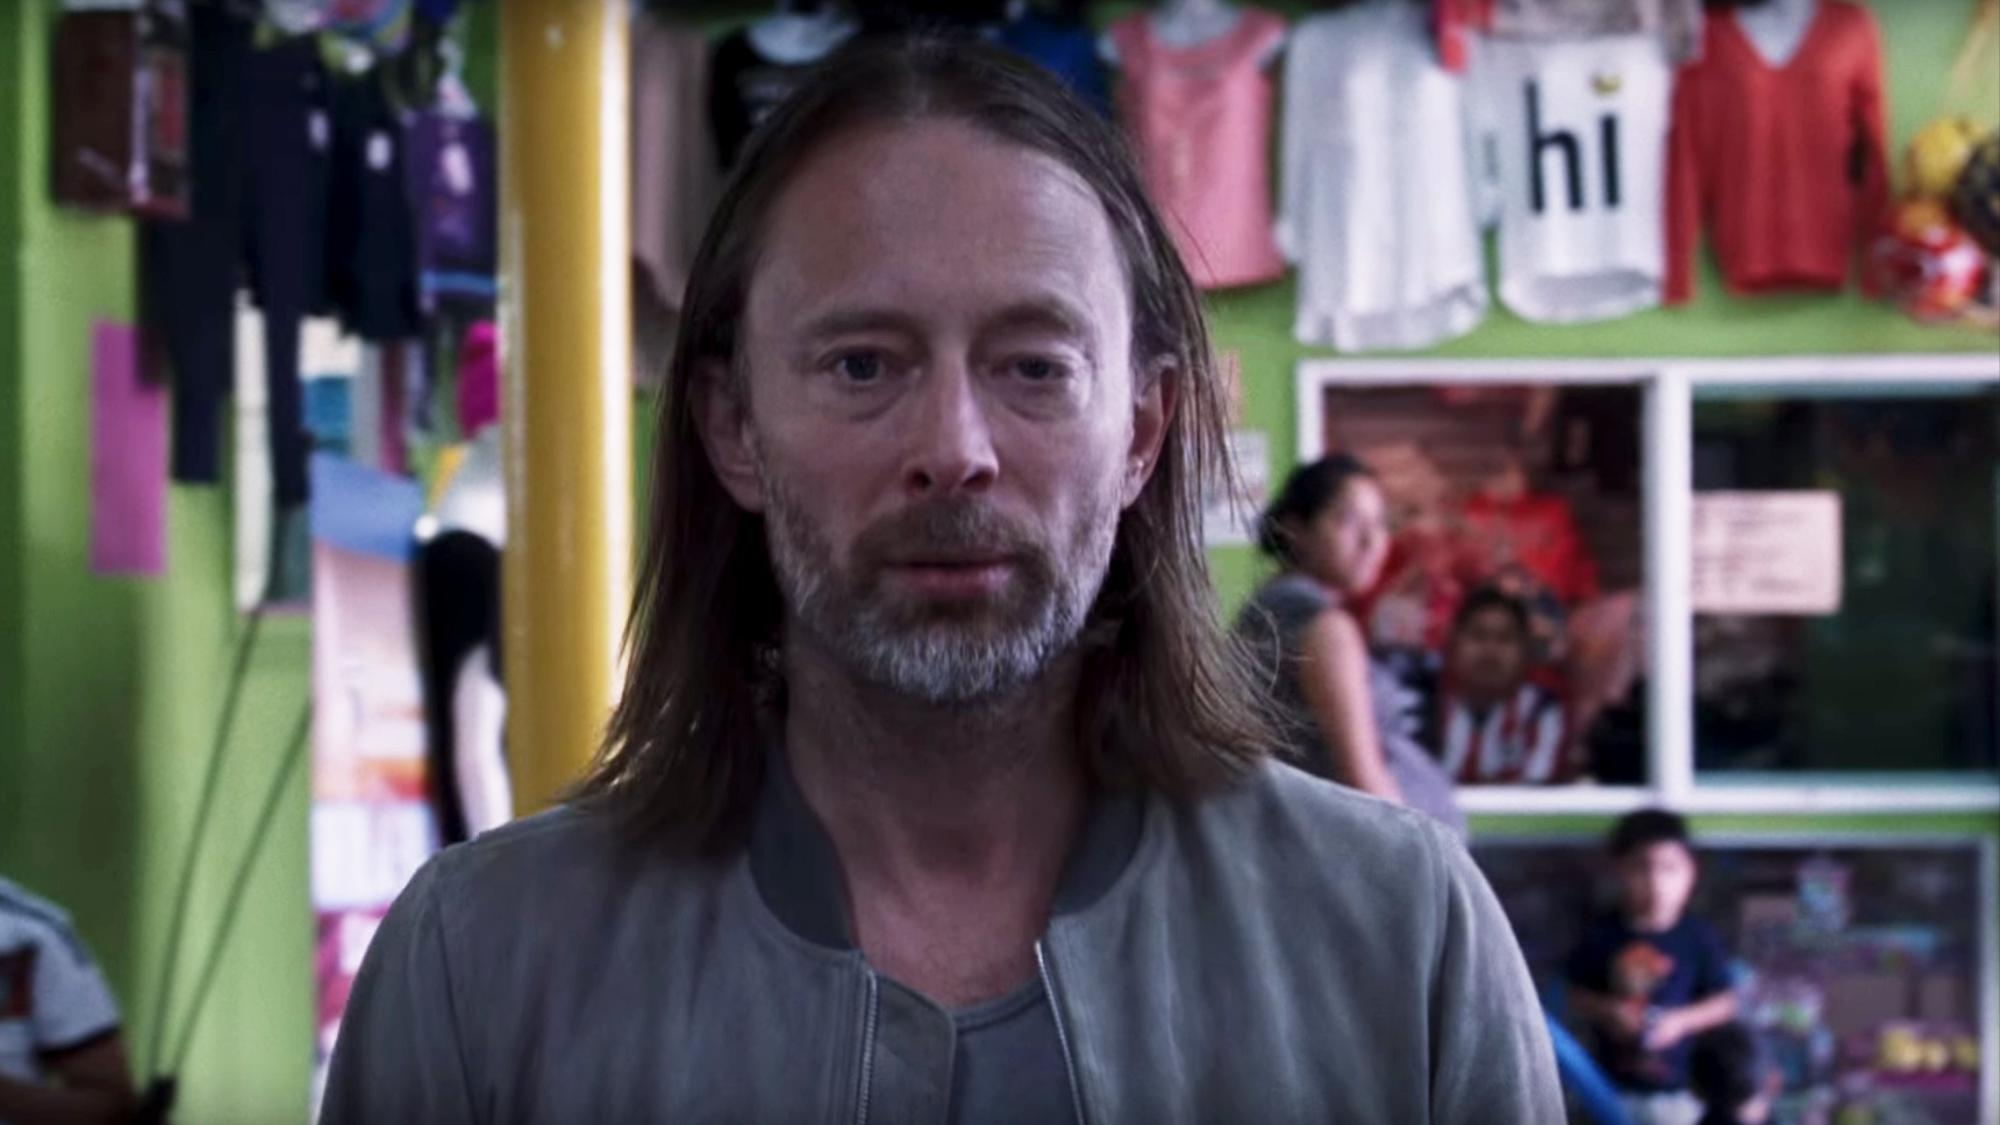 radiohead confirms new album arriving this sunday | watch ...